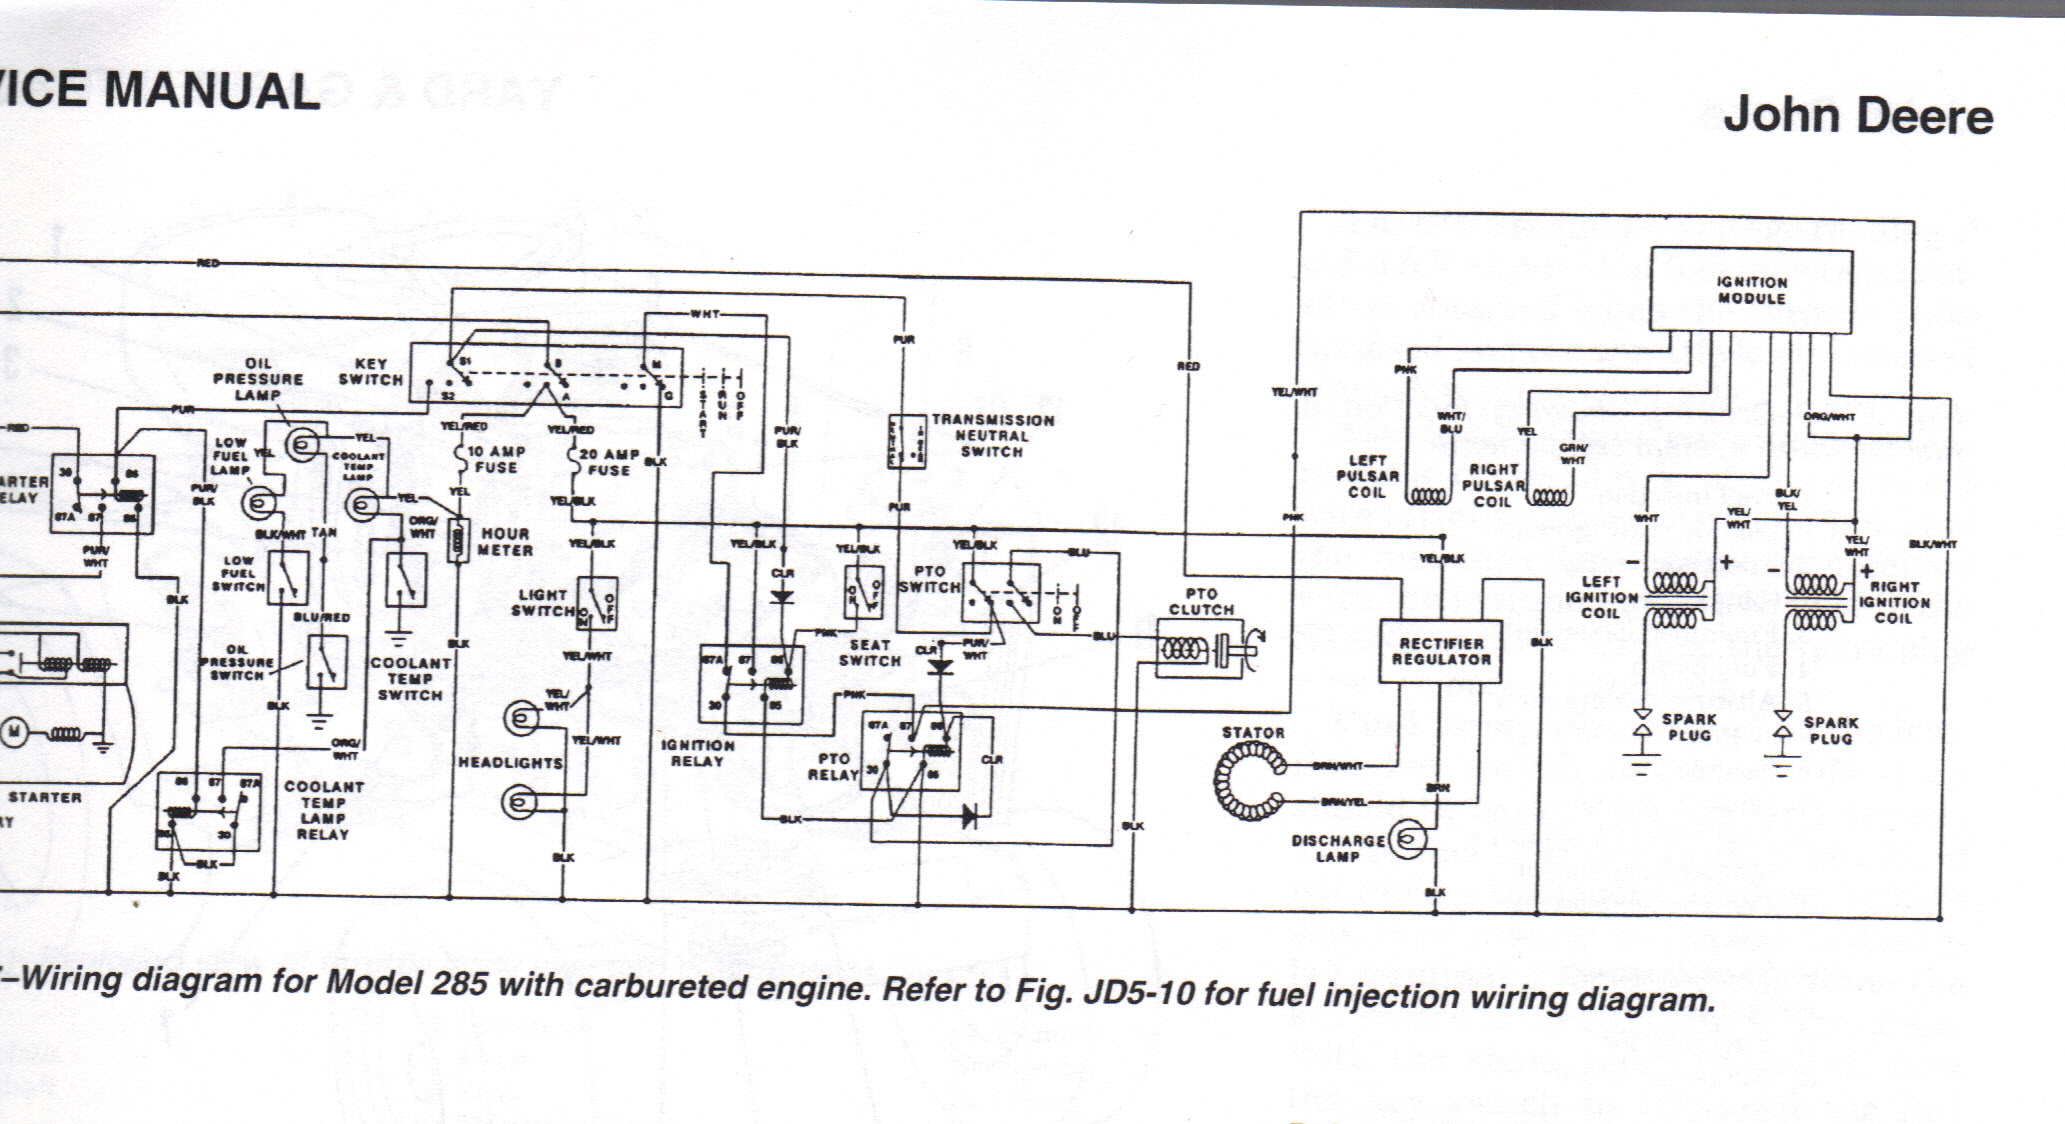 Simplicity Lawn Mower Wiring Diagram - Wiring Diagrams Dock